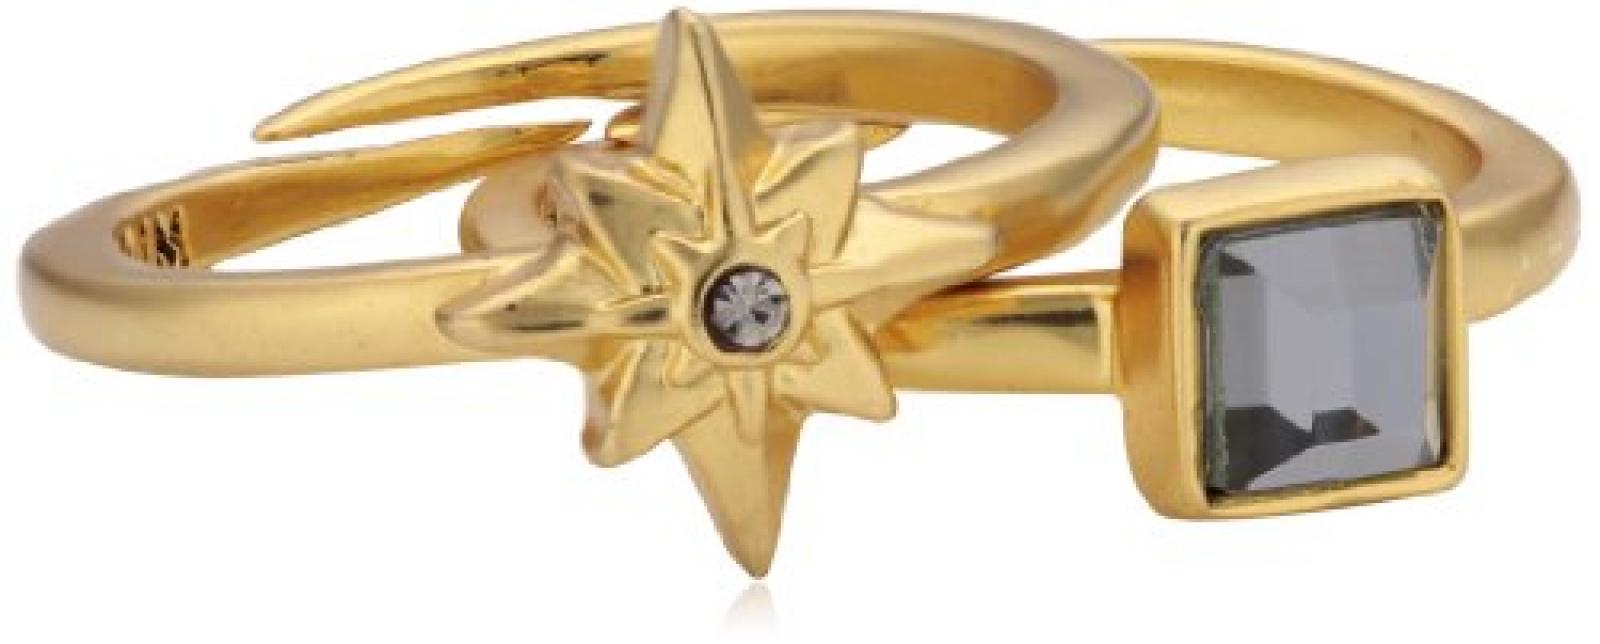 Pilgrim Jewelry Damen-Ring Messing Kristall Glaskristall Starcross grau Gr. 191342104